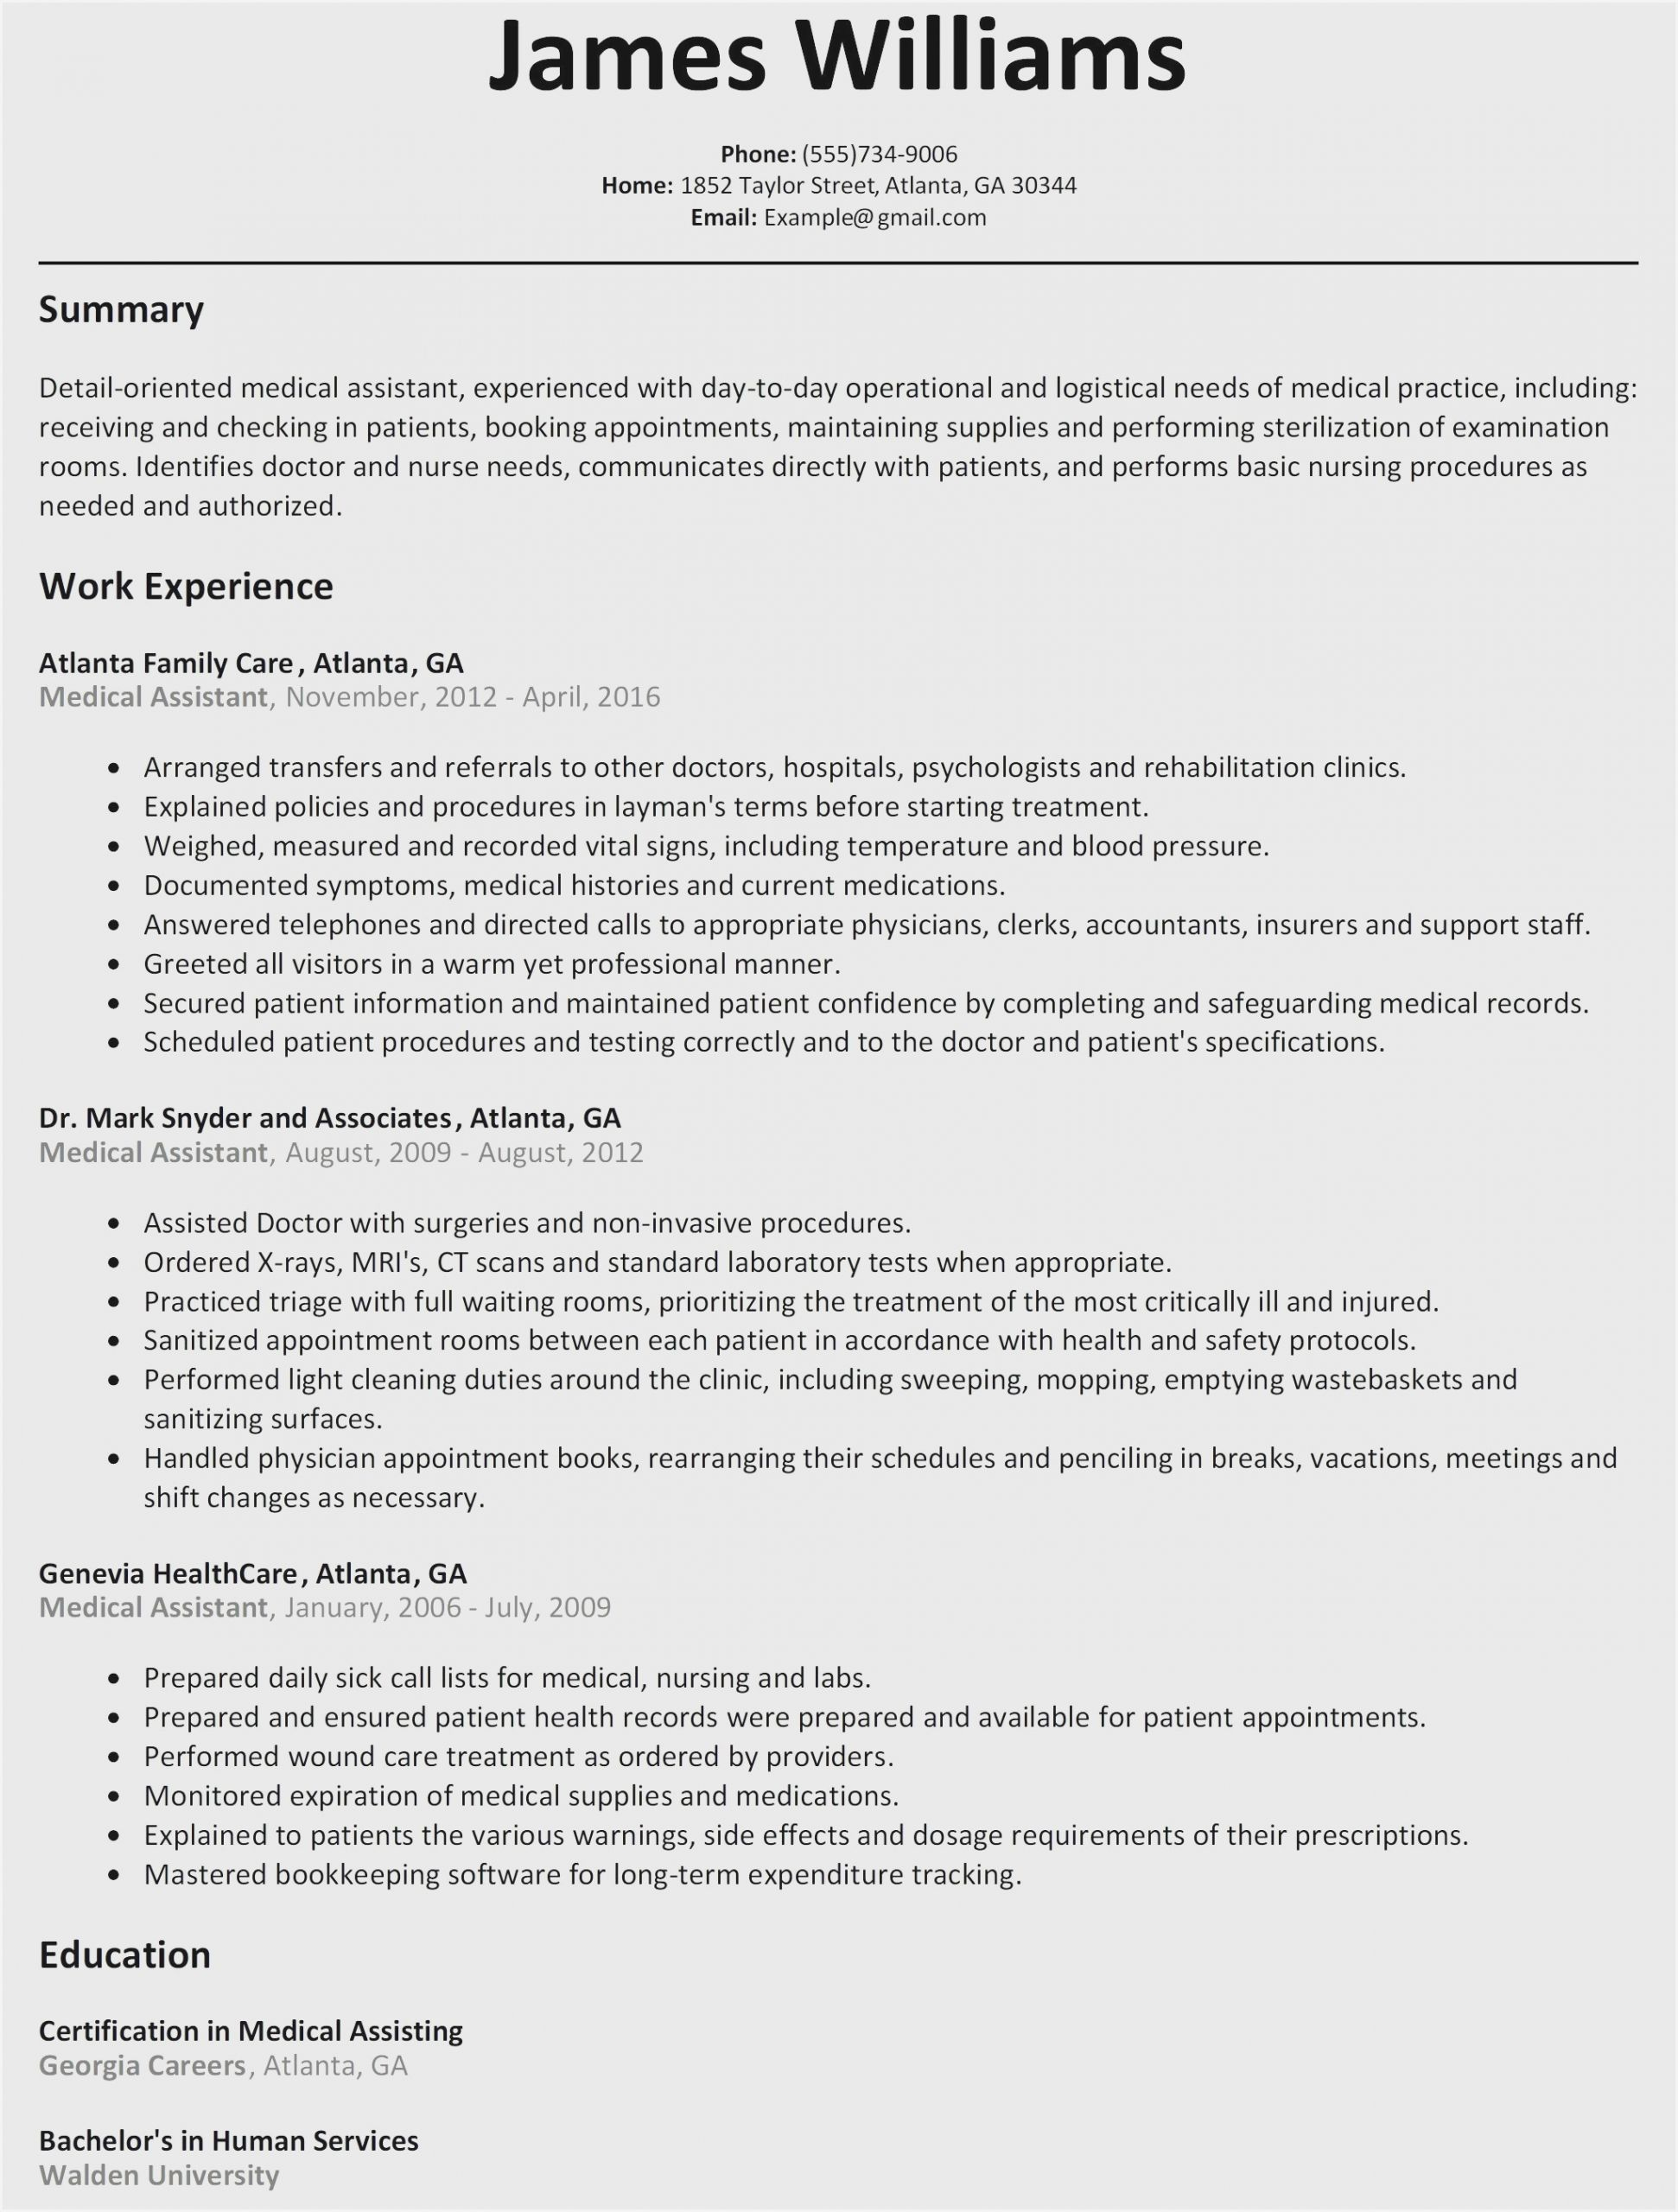 professional resume writer certification sample certified writers federal scaled bio past Resume Certified Professional Resume Writers